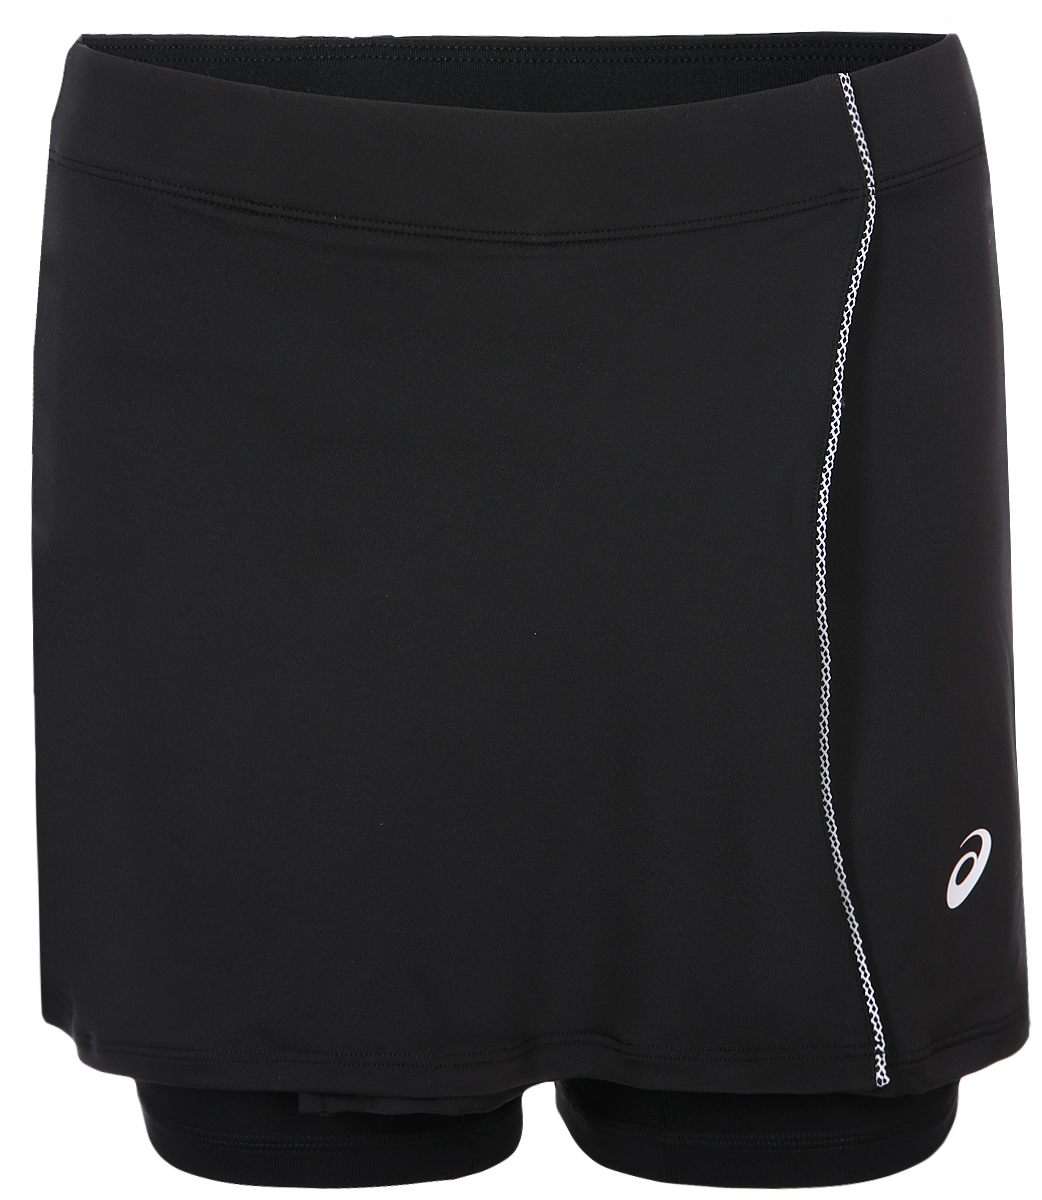 Юбка Asics Kneetight, цвет: черный. 154425-0904. Размер XS (42) футболка asics футболка asics stripe ss top